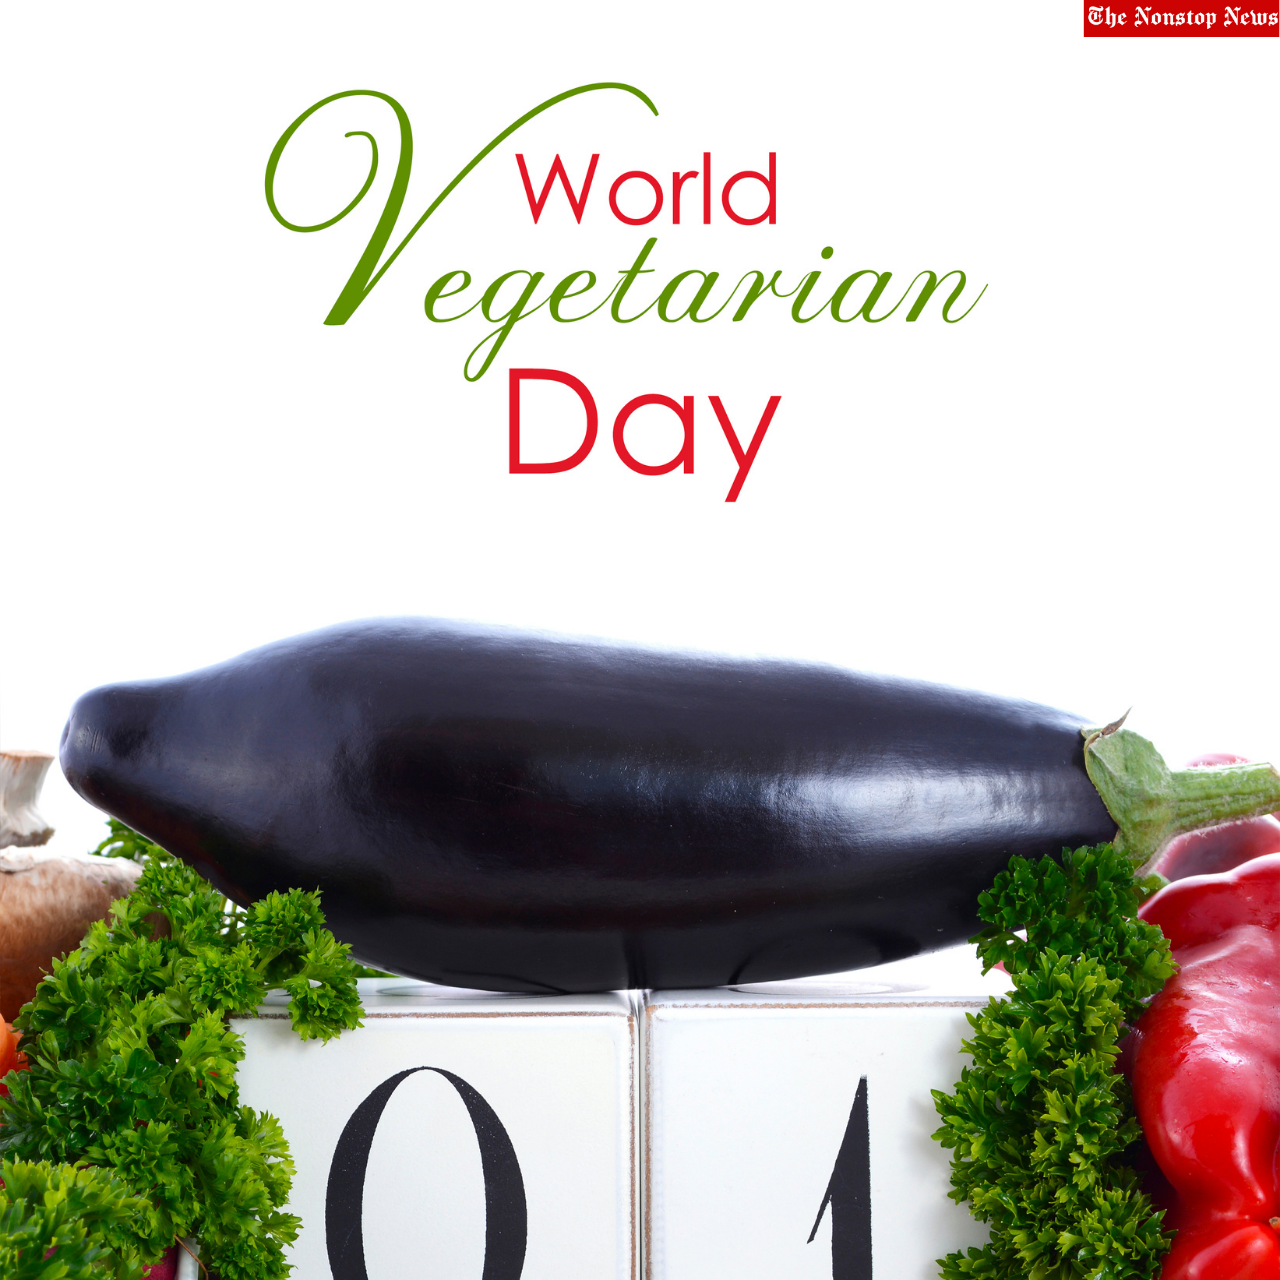 World Vegetarian Day 2021 Quotes, HD Images, Wishes, Meme, Messages, and Gif to share